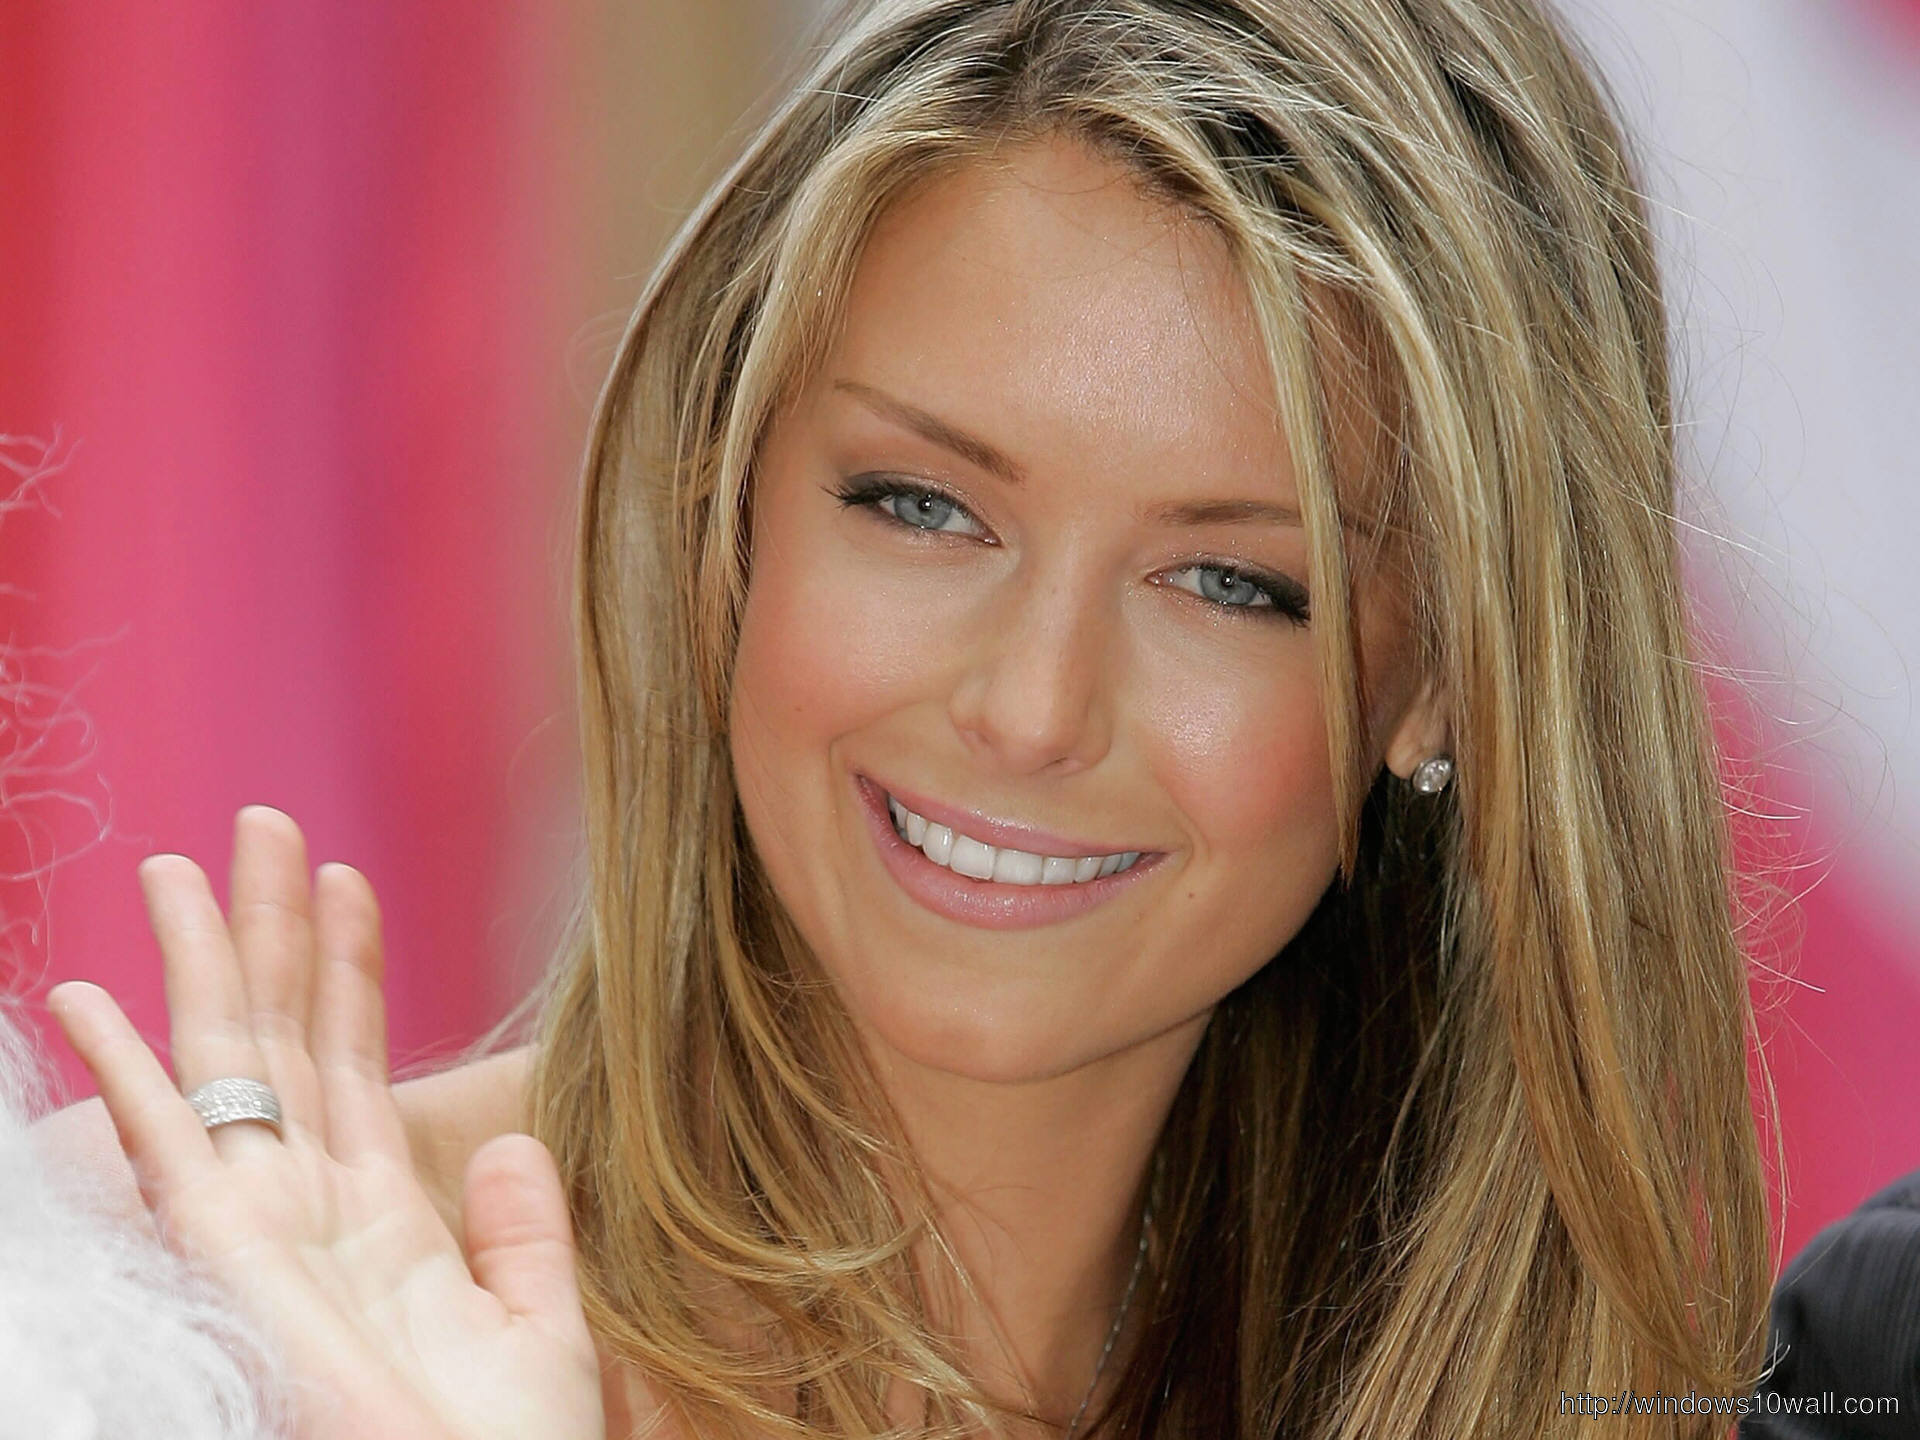 jennifer hawkins saying Hi to Fans Wallpaper